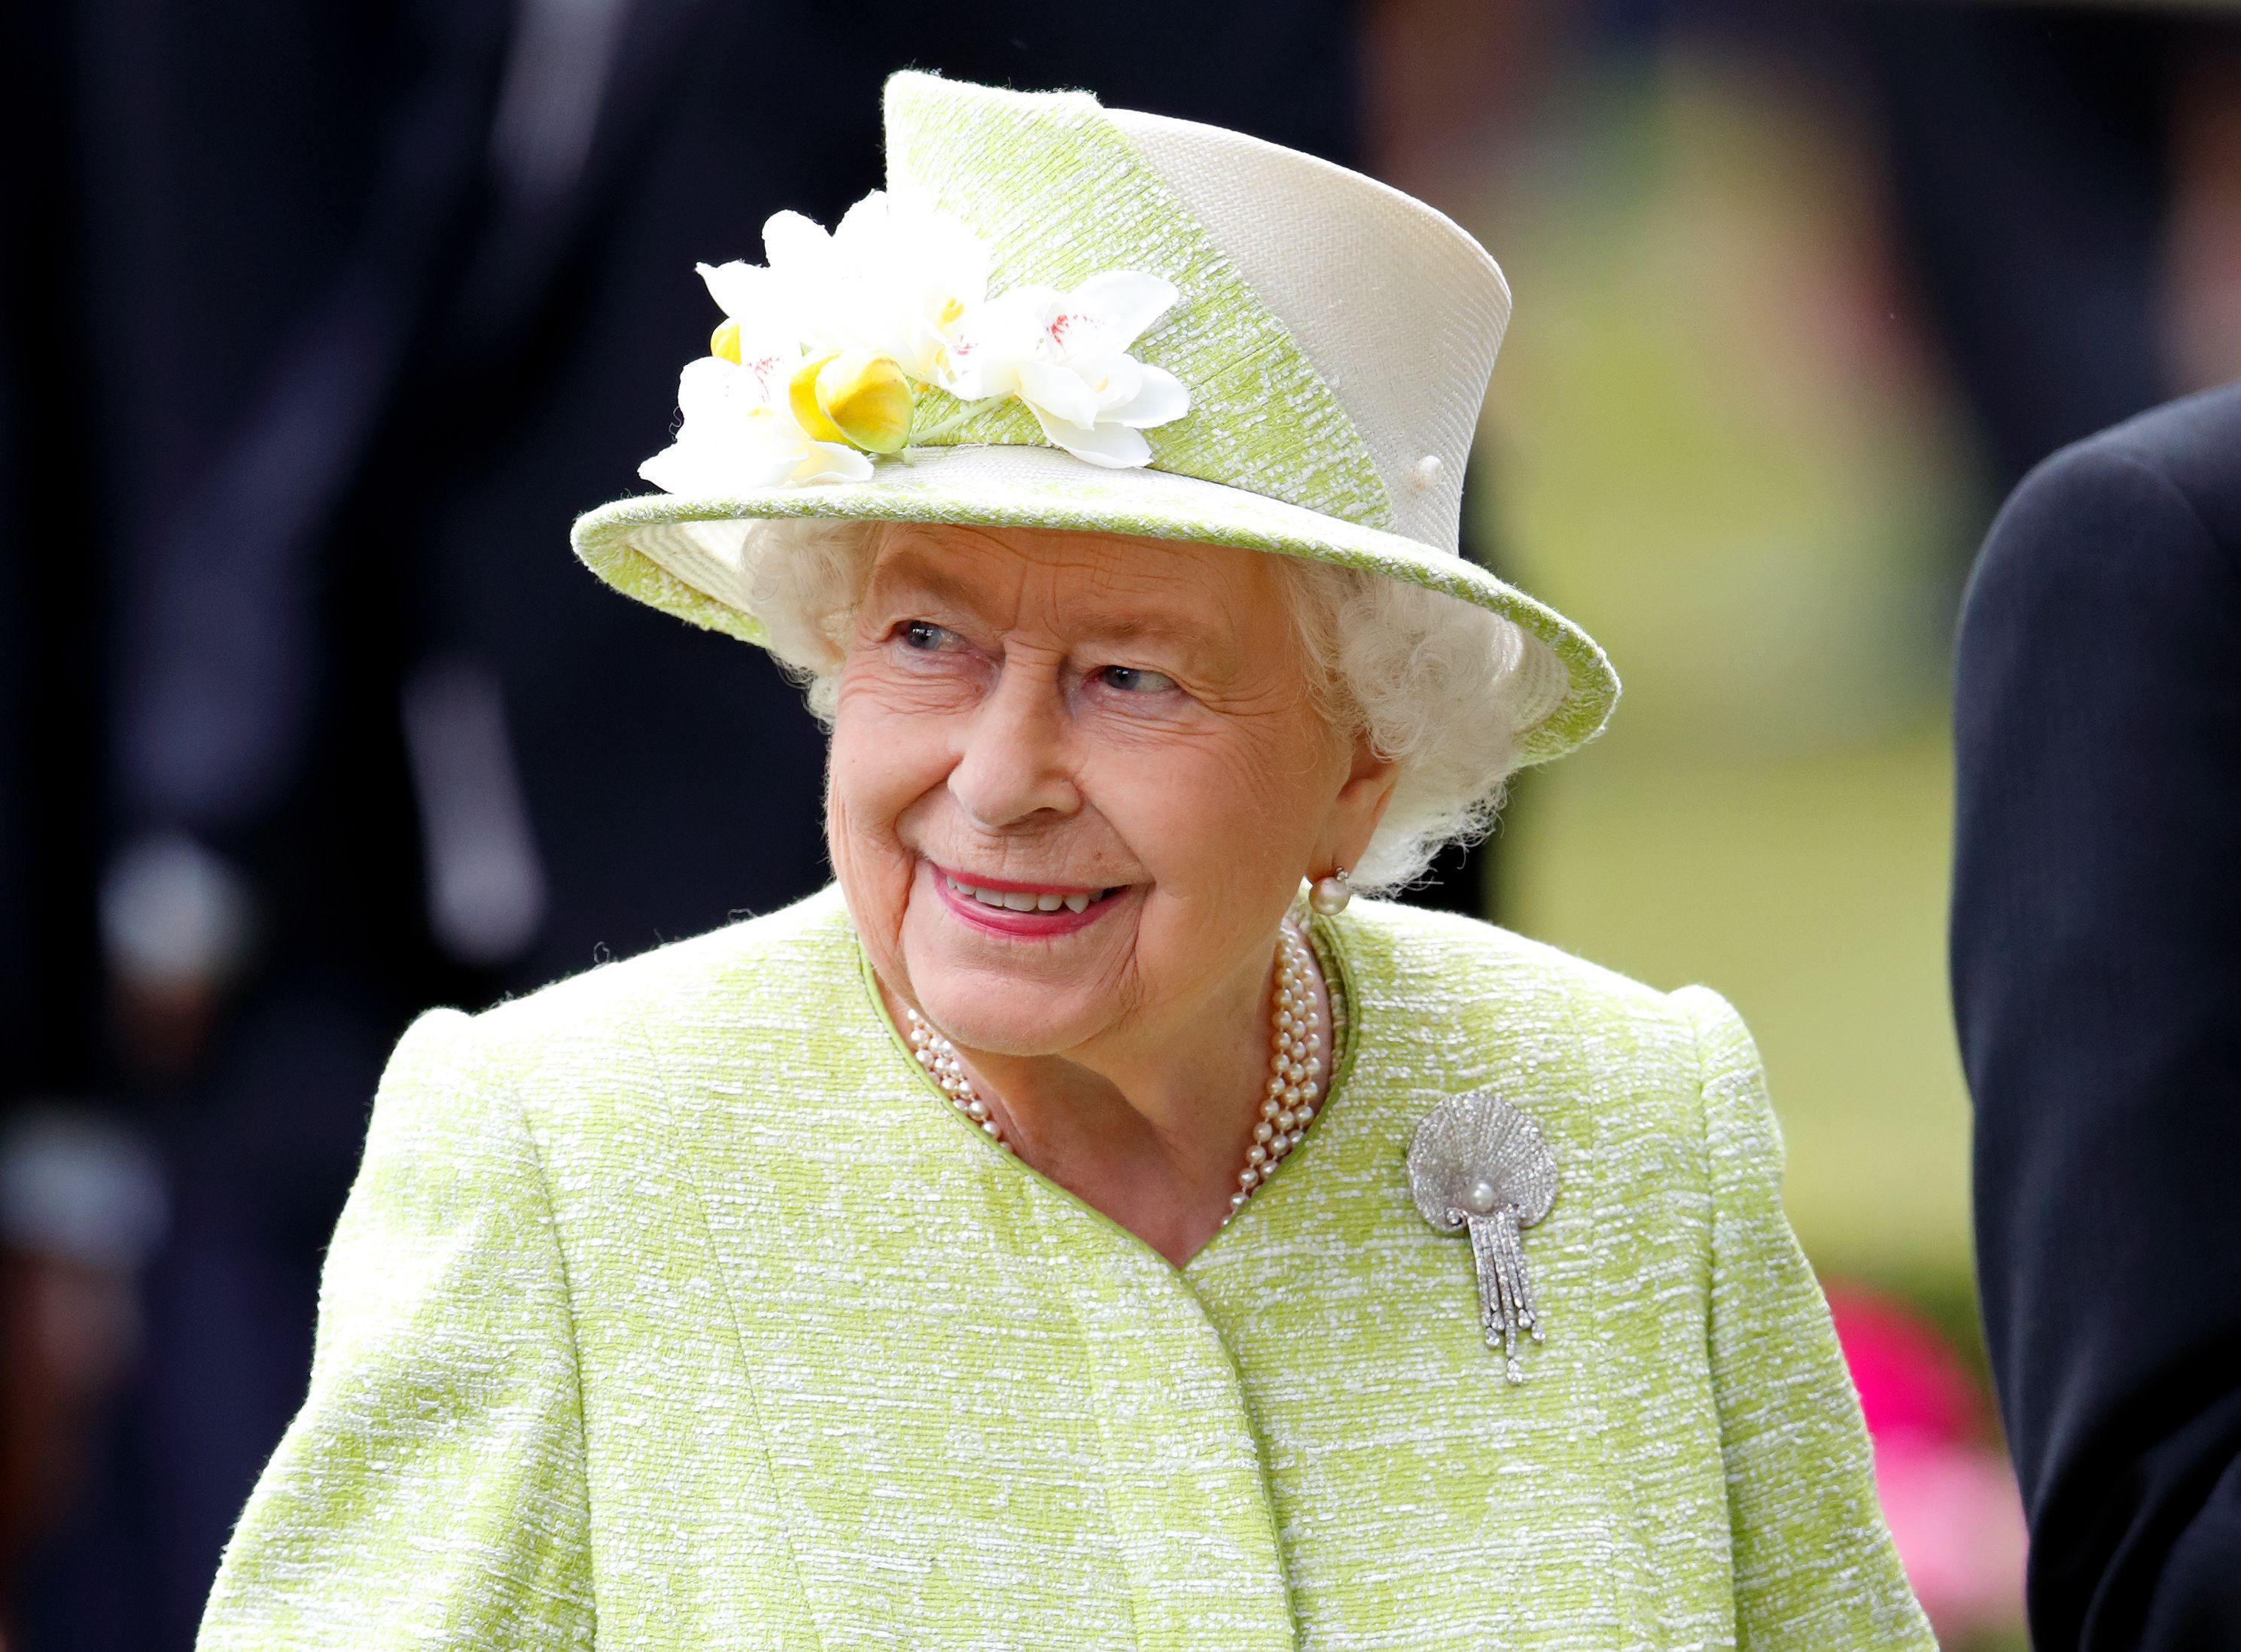 Queen Elizabeth II at day five of Royal Ascot at Ascot Racecourse on June 22, 2019. | Photo: Getty Images